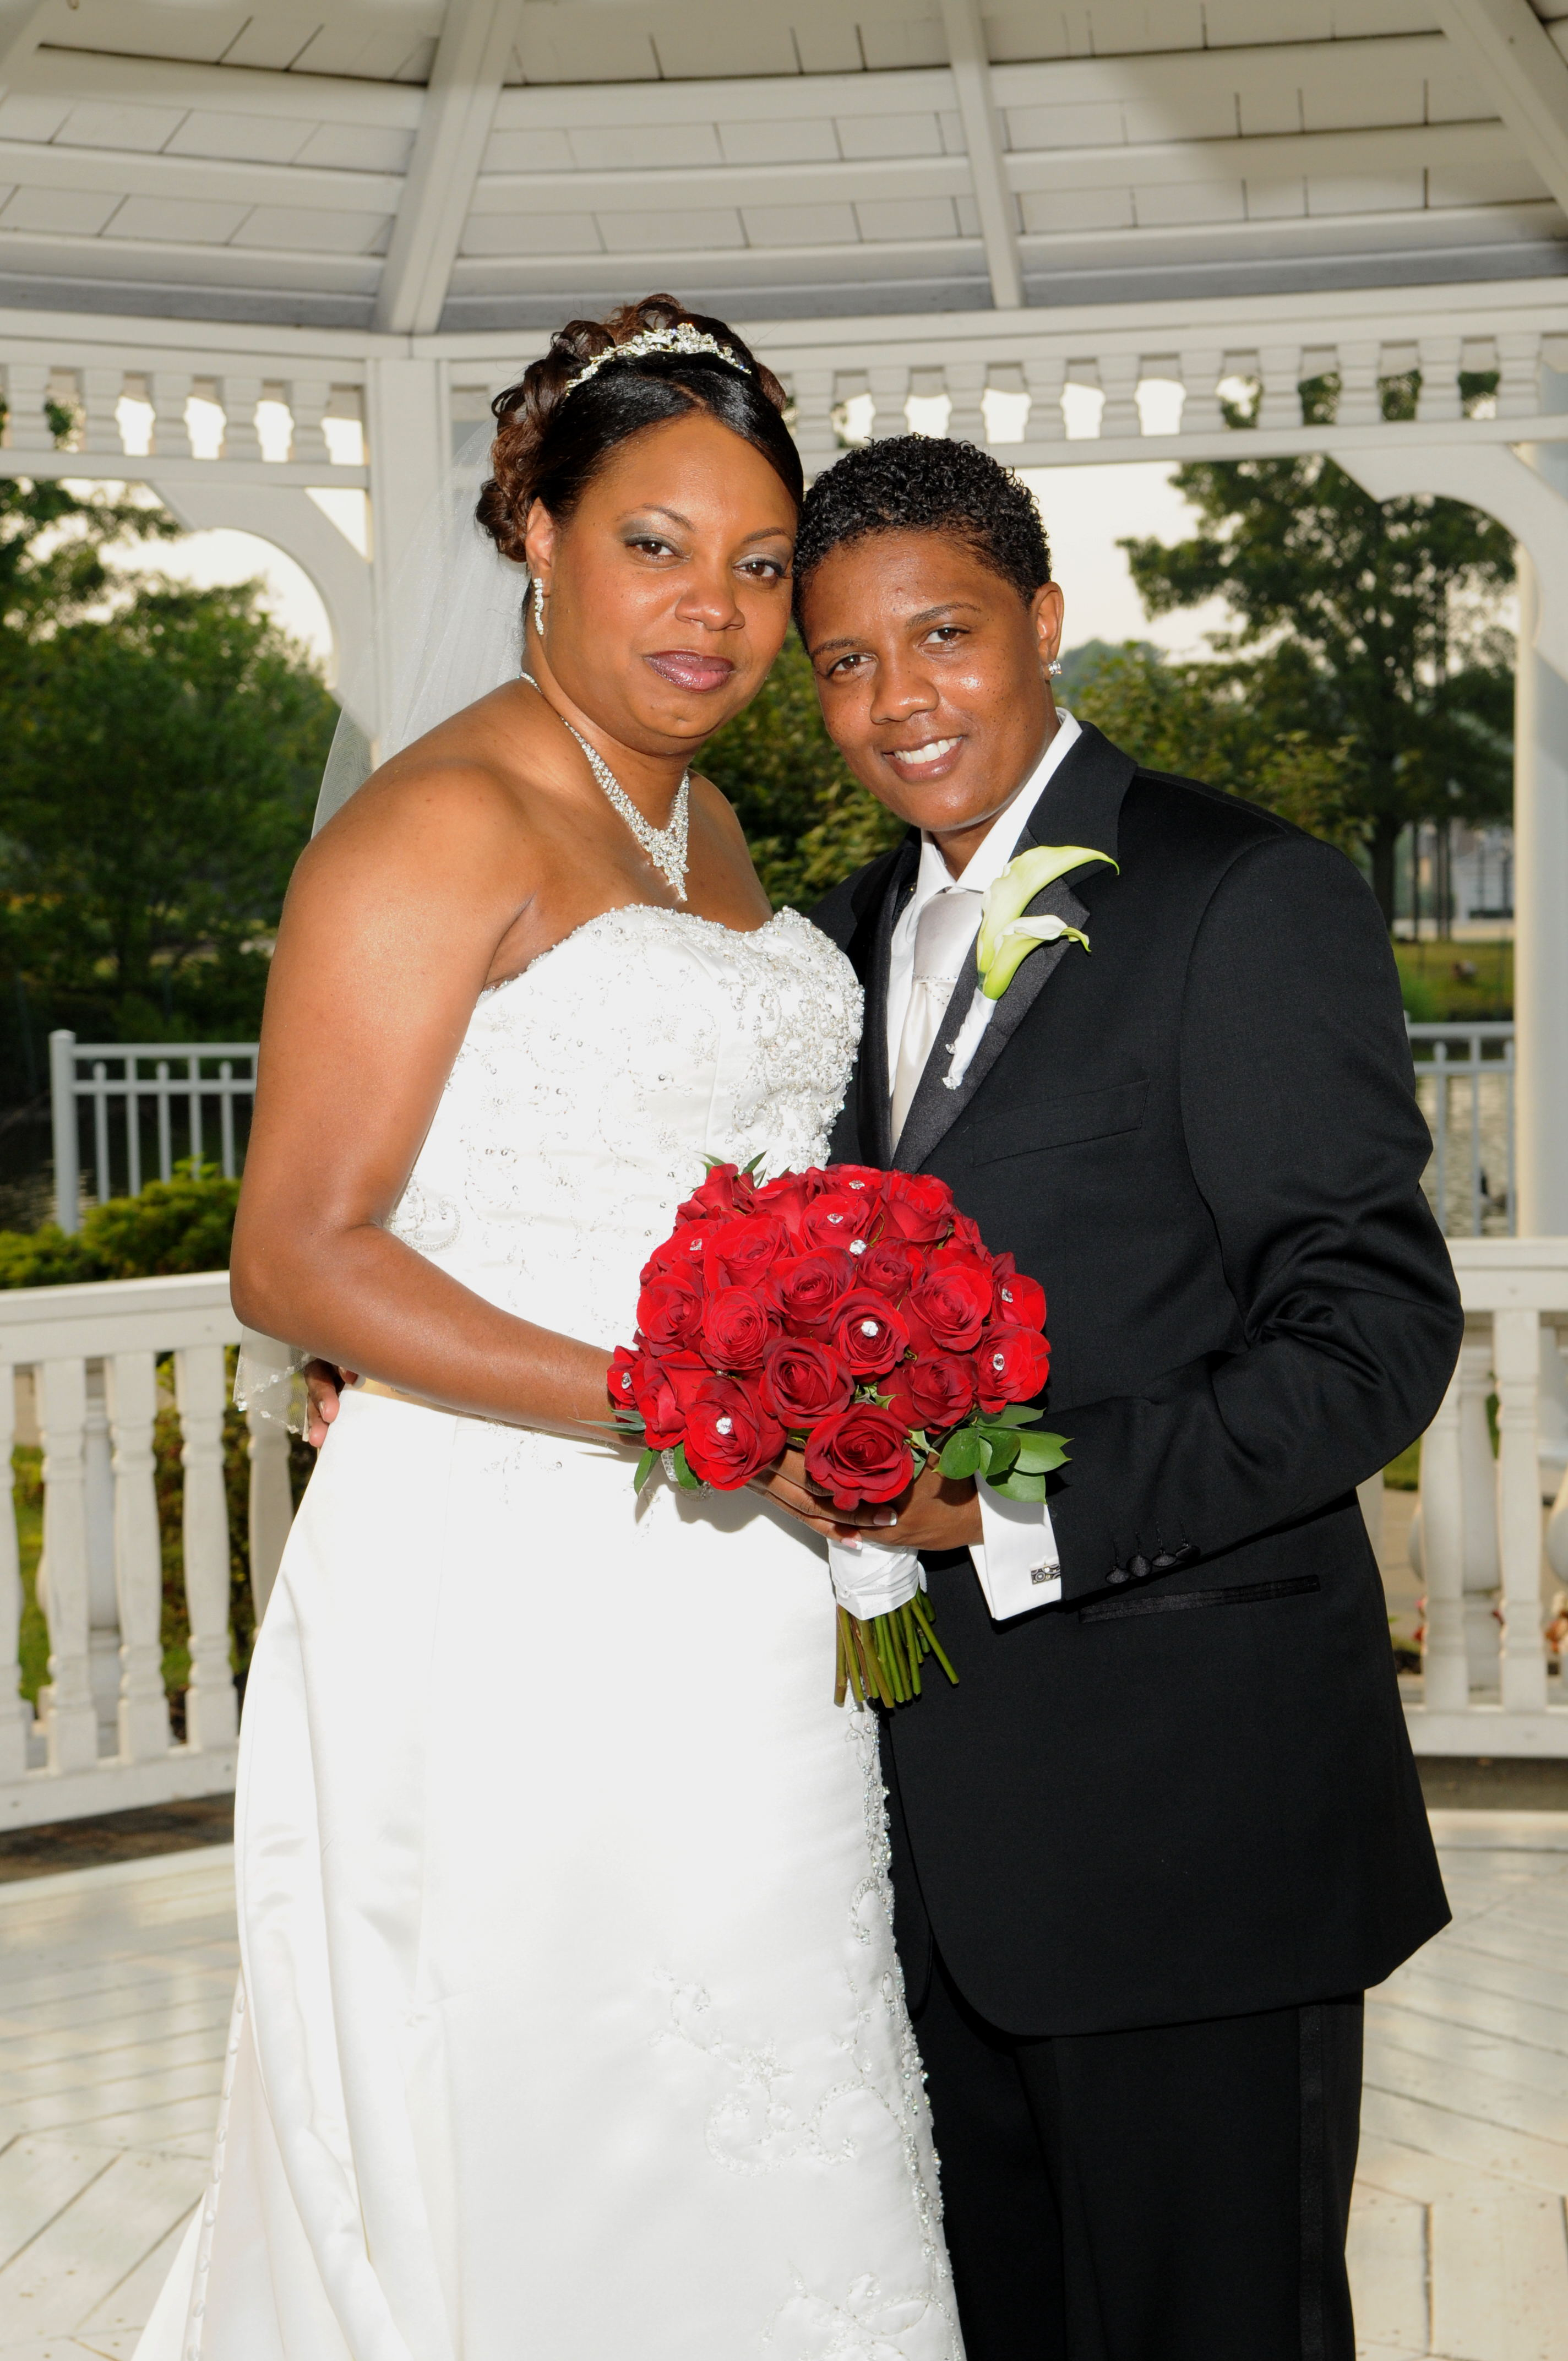 Federal benefits present a challenge for Tasha and Kaali Cohen who obtained a civil union in New Jersey